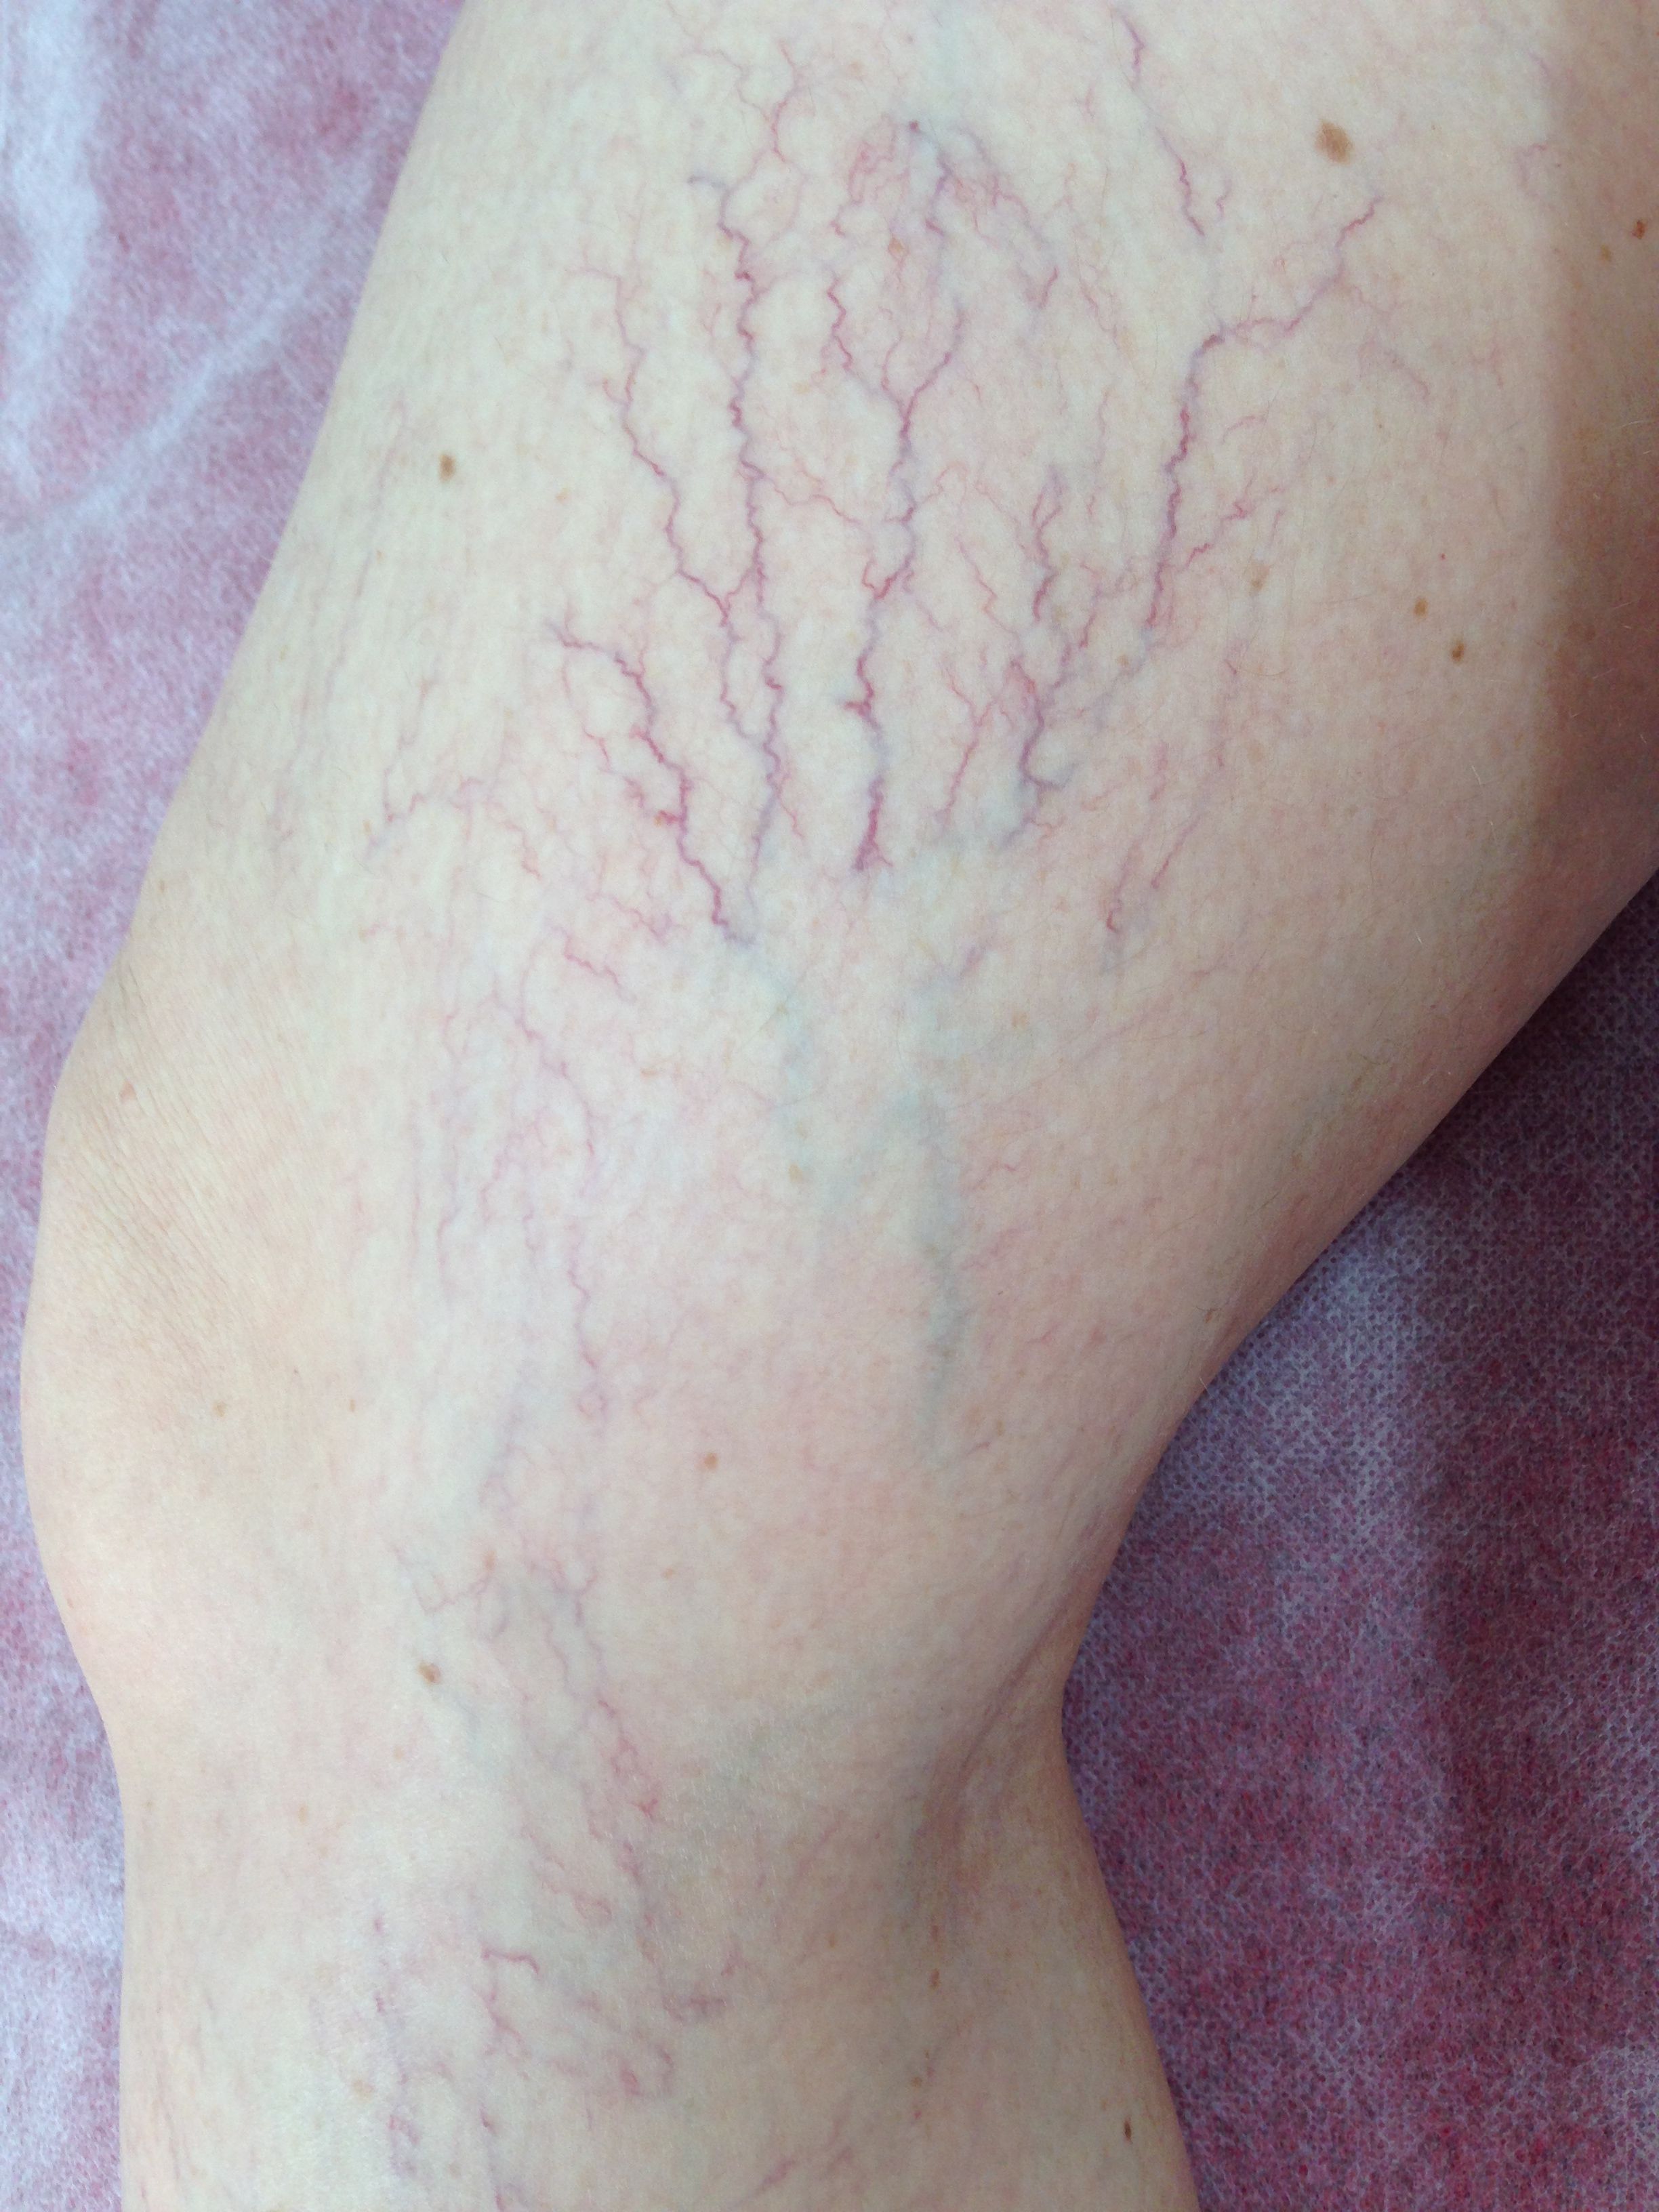 Patient presented with extensive Reticular veins with associated Telangiestasia. Female, 40 years.